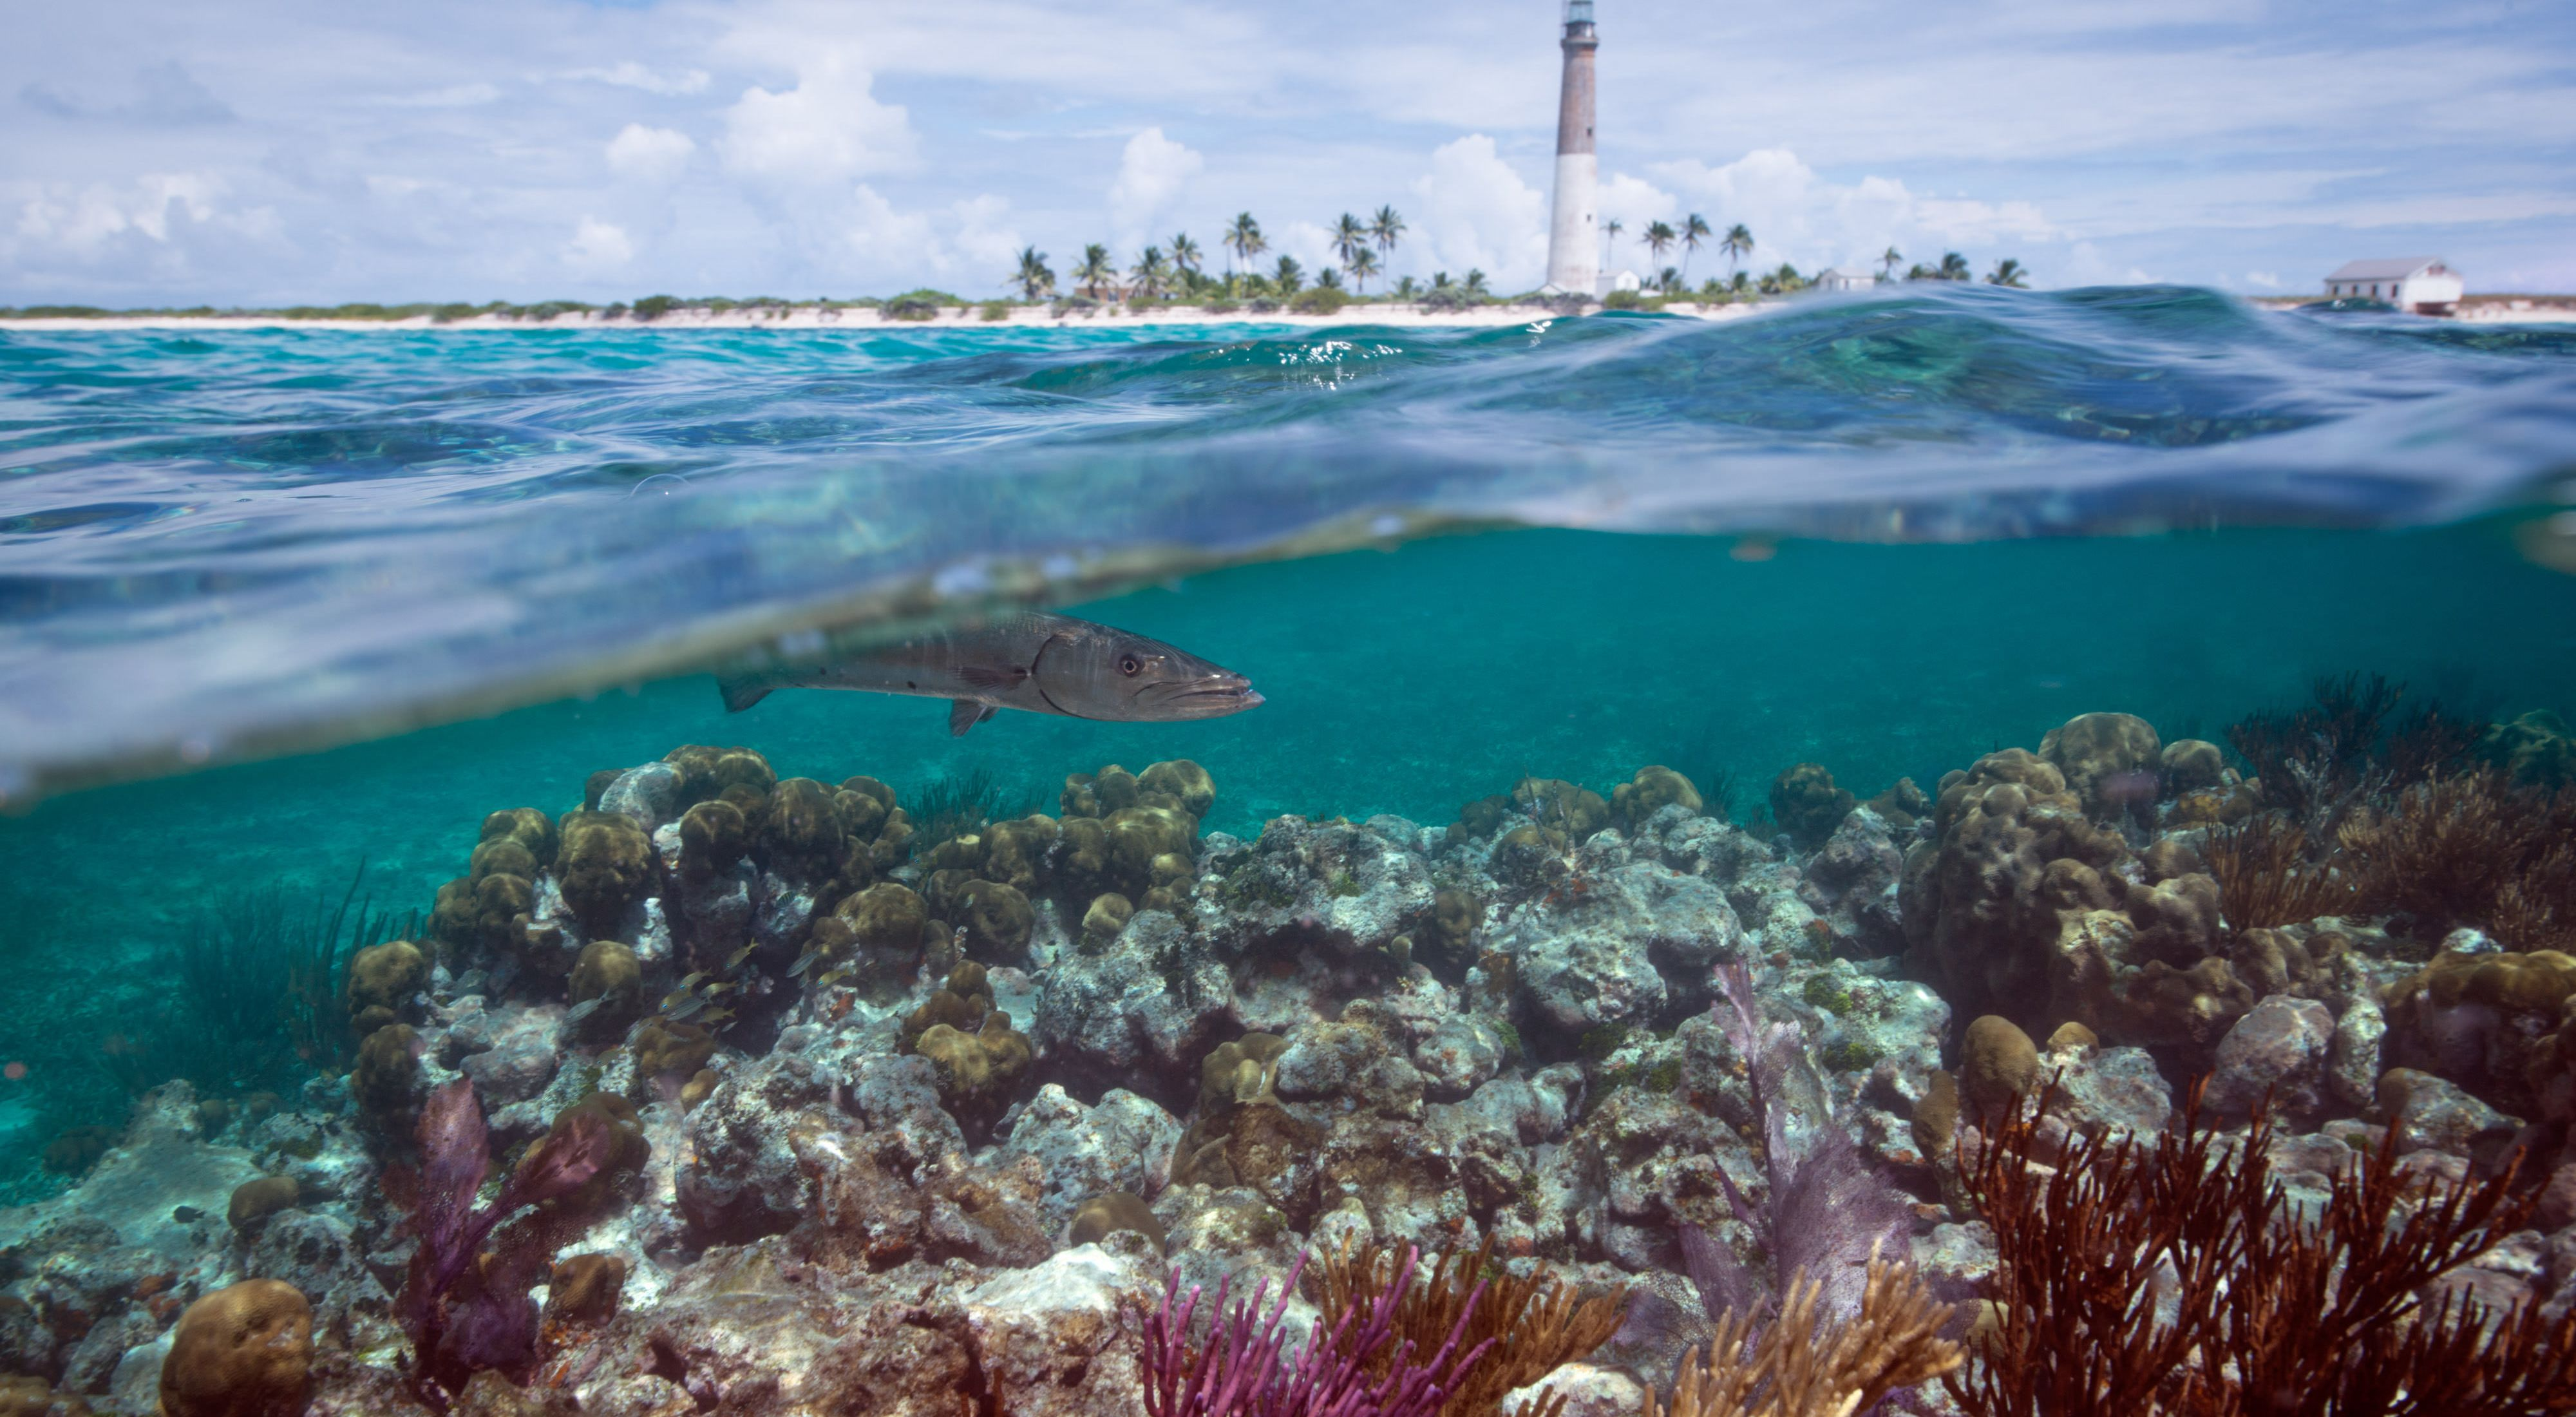 A fish swims over coral reefs with a lighthouse and palm trees visible on land.